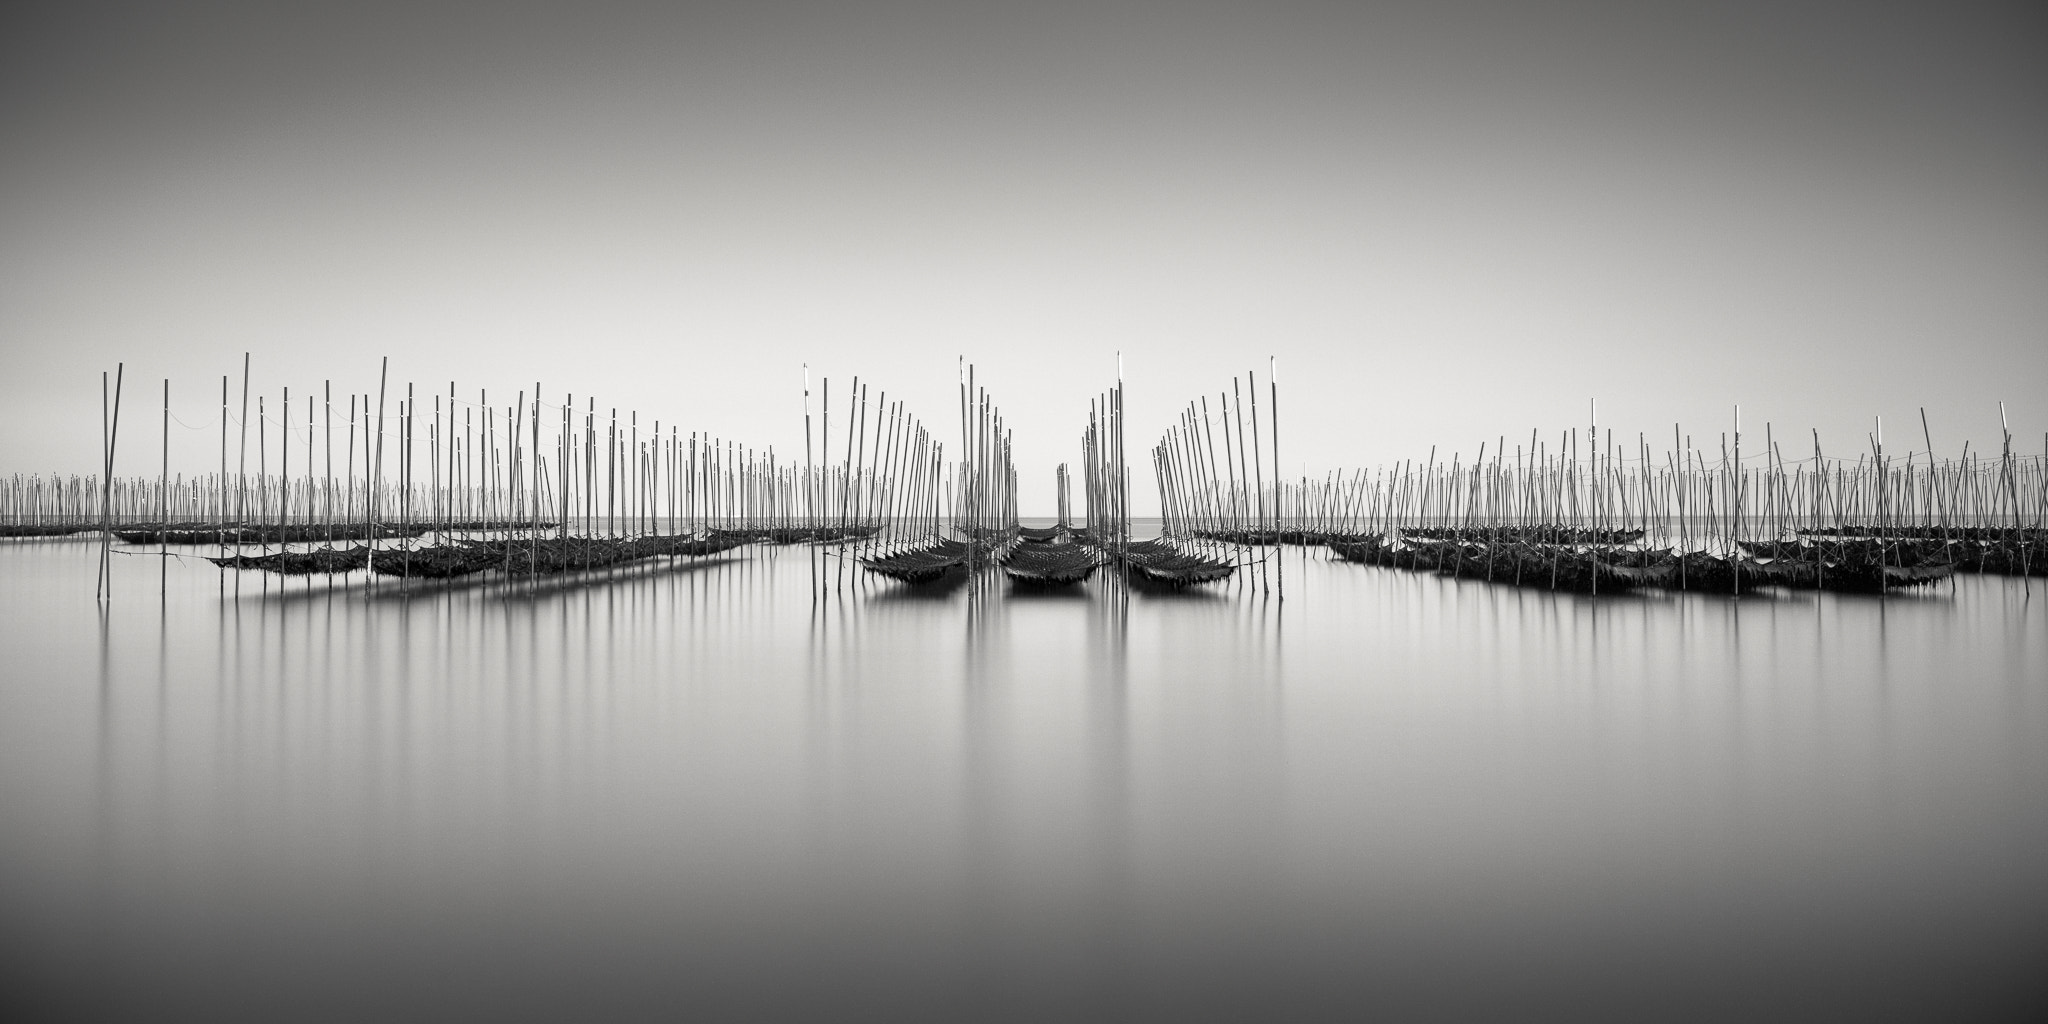 Photograph aquaculture by Stephen Cairns on 500px